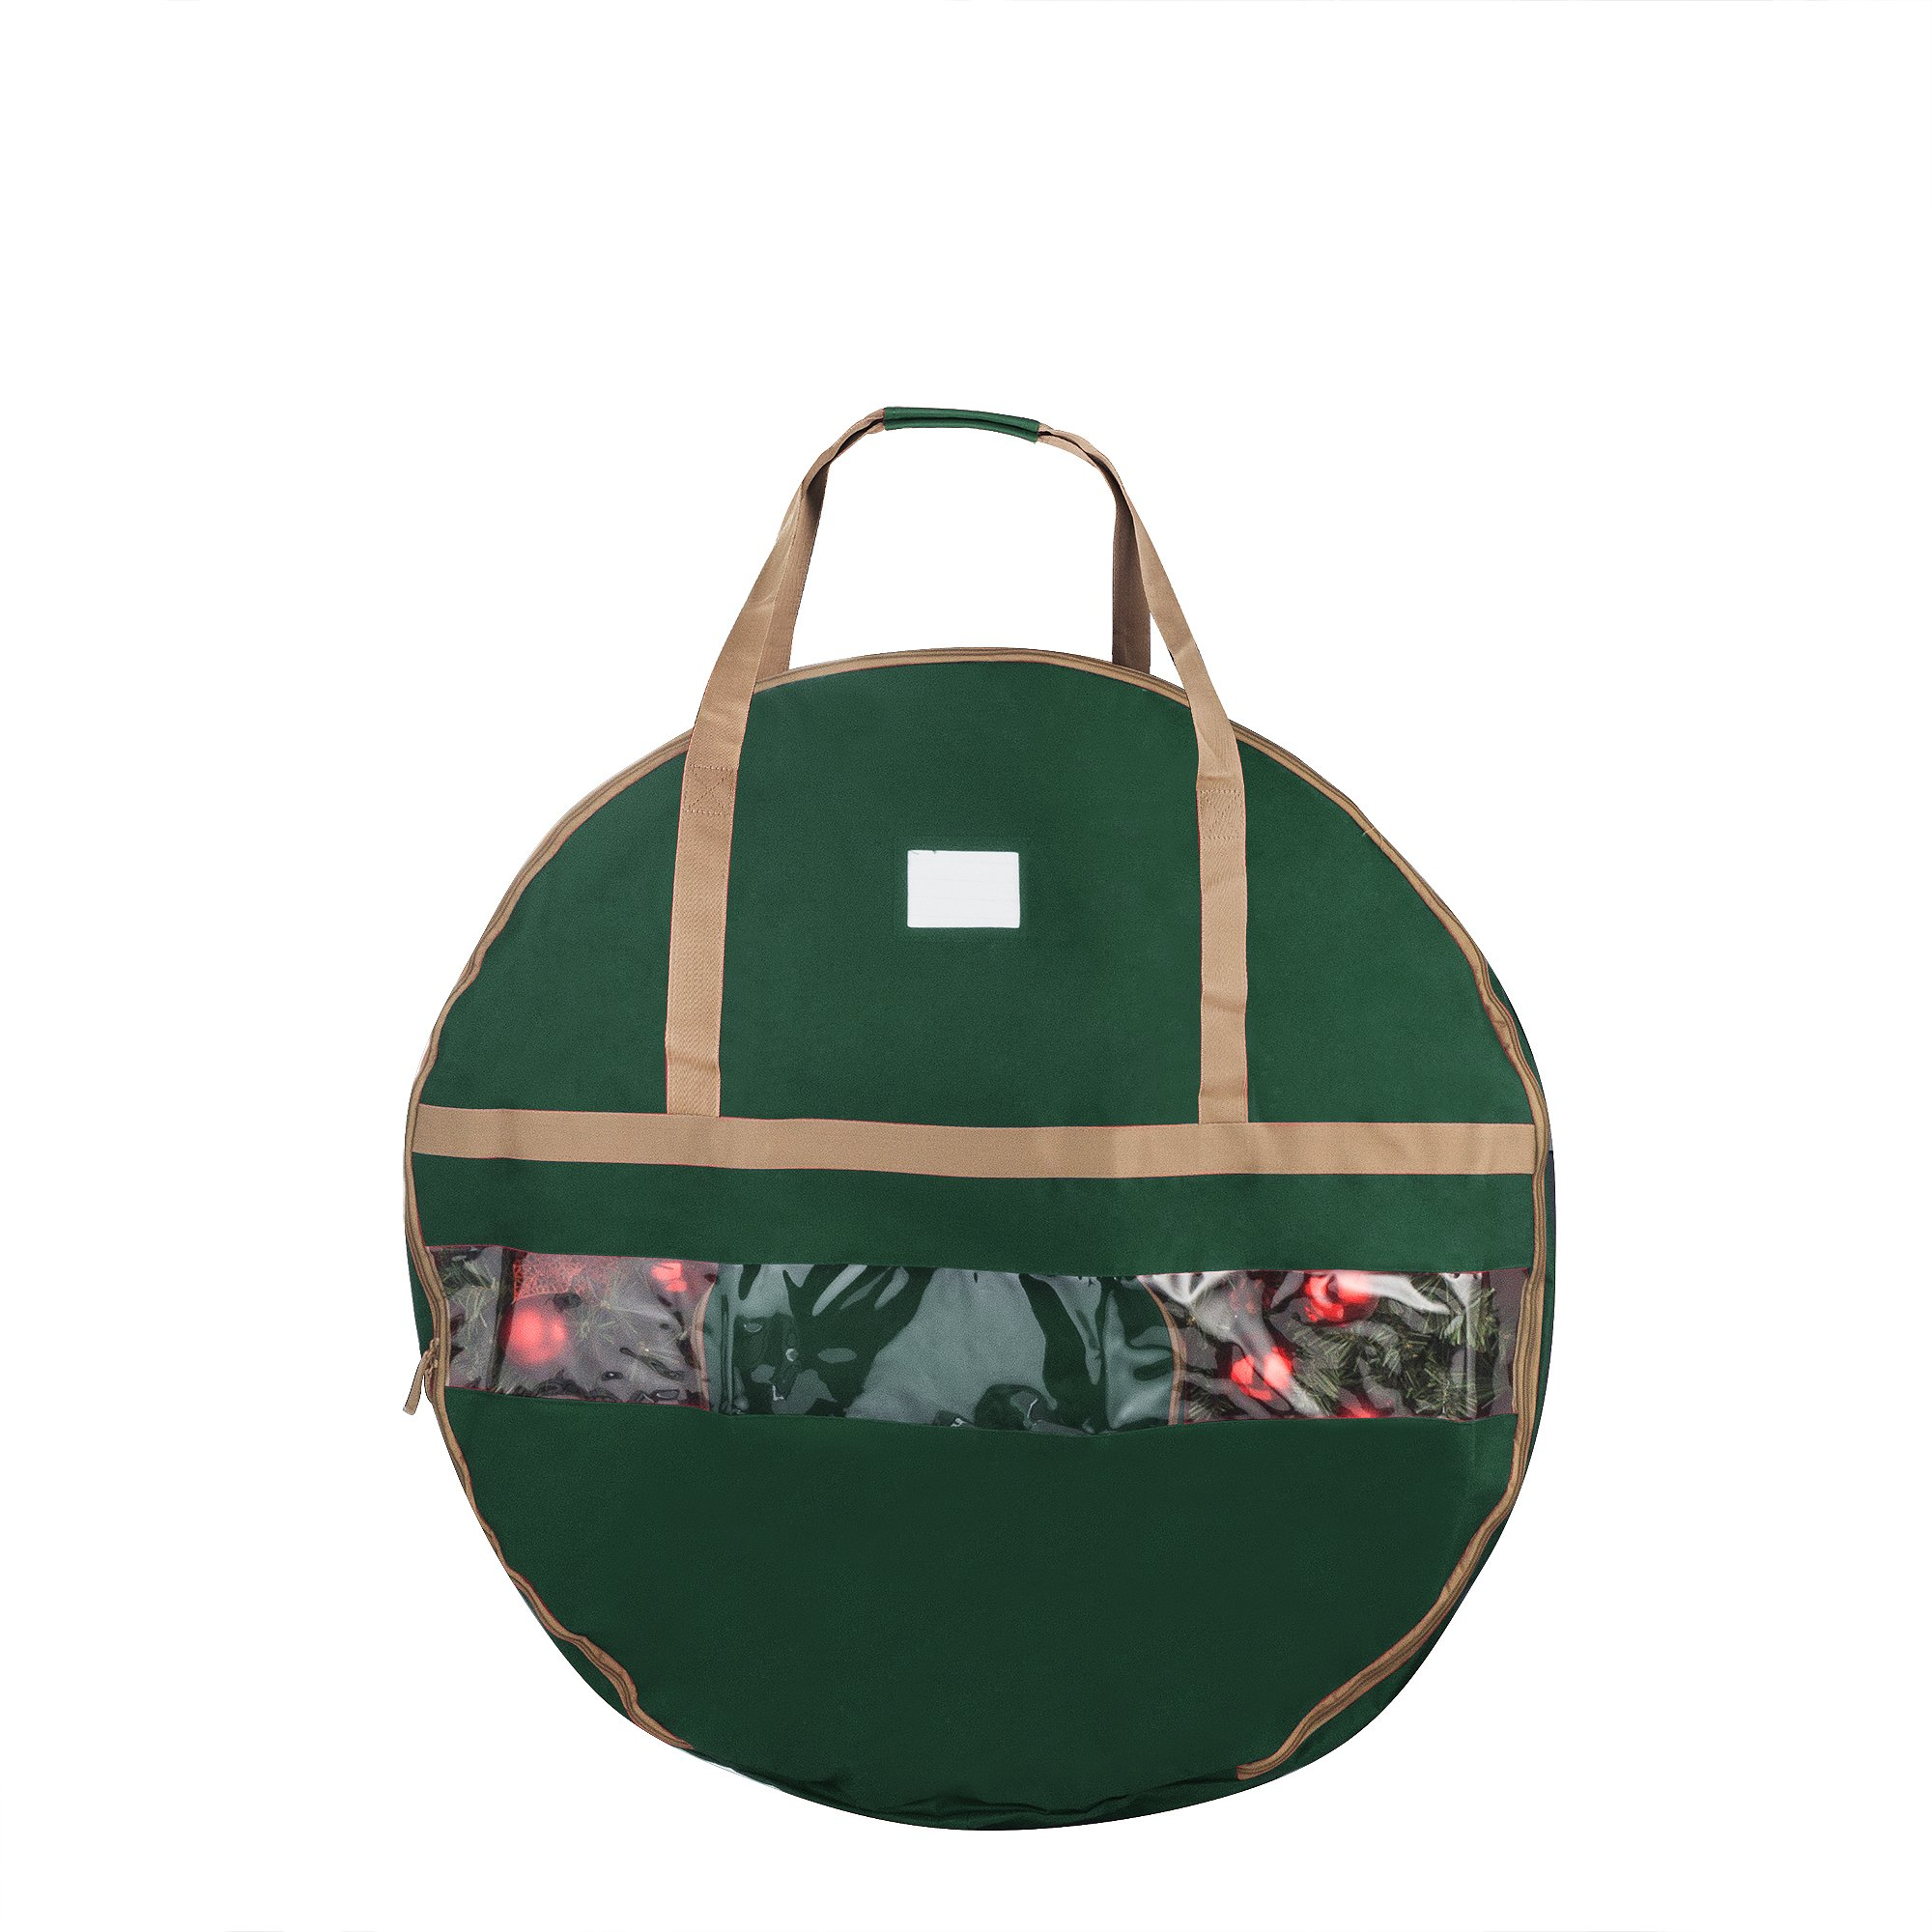 Elf Stor 1555 Ultimate Green Holiday Christmas Storage Bag for 36'' Inch Wreaths, 36 Inch